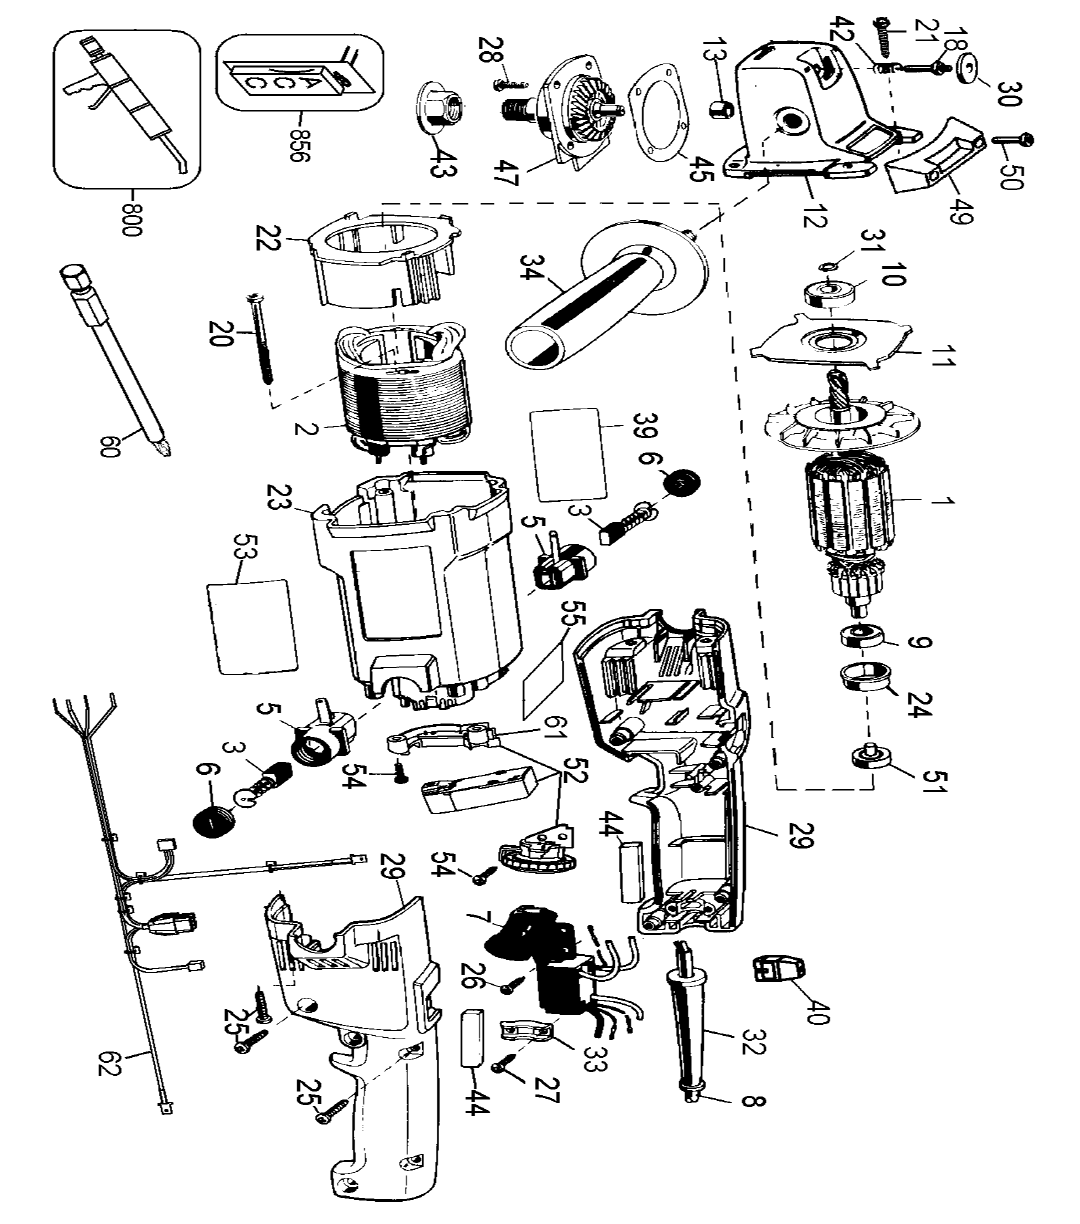 Dewalt Dw849 Type 3 Parts List